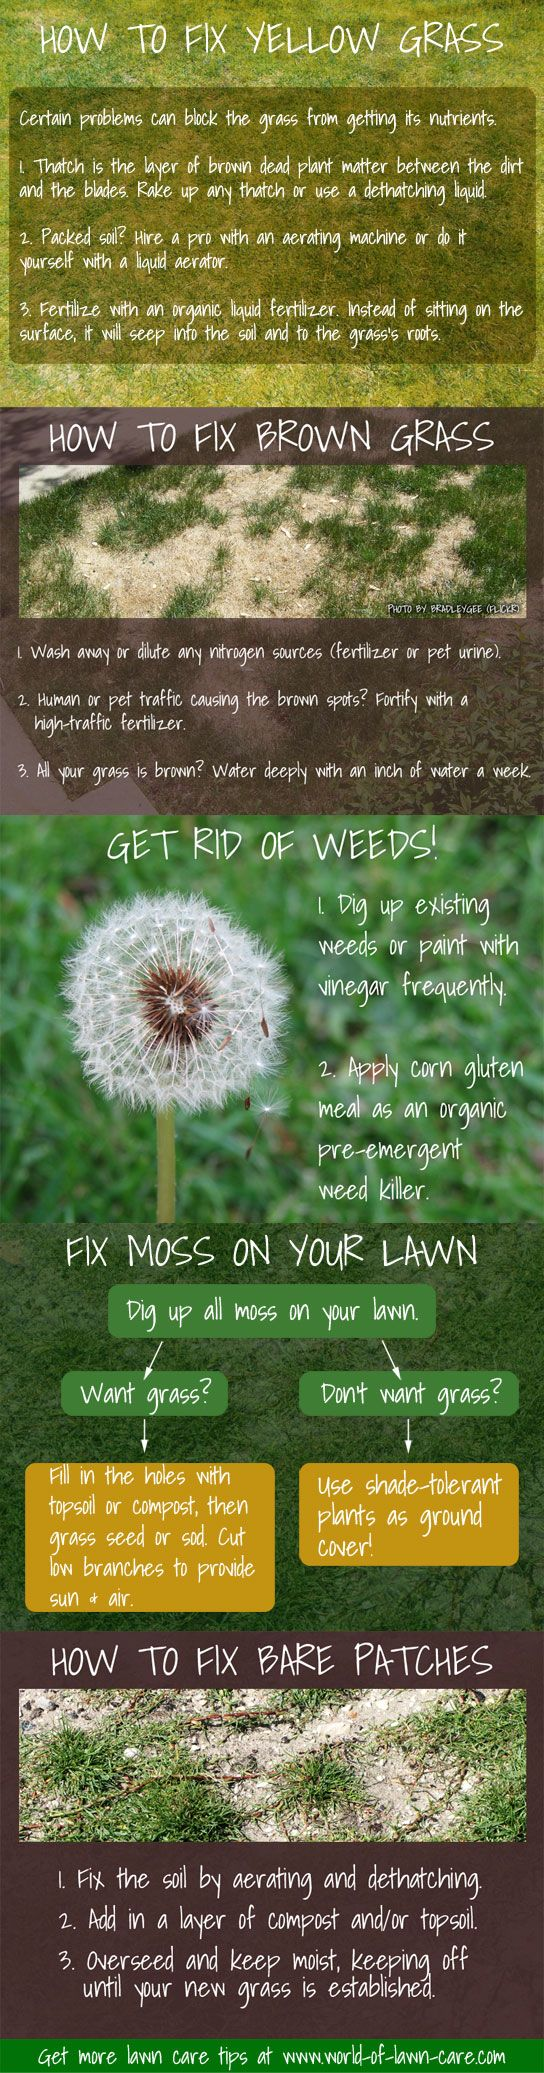 5 lawn repair fixes for yellowing grass, bare / brown patches, weeds, and moss.